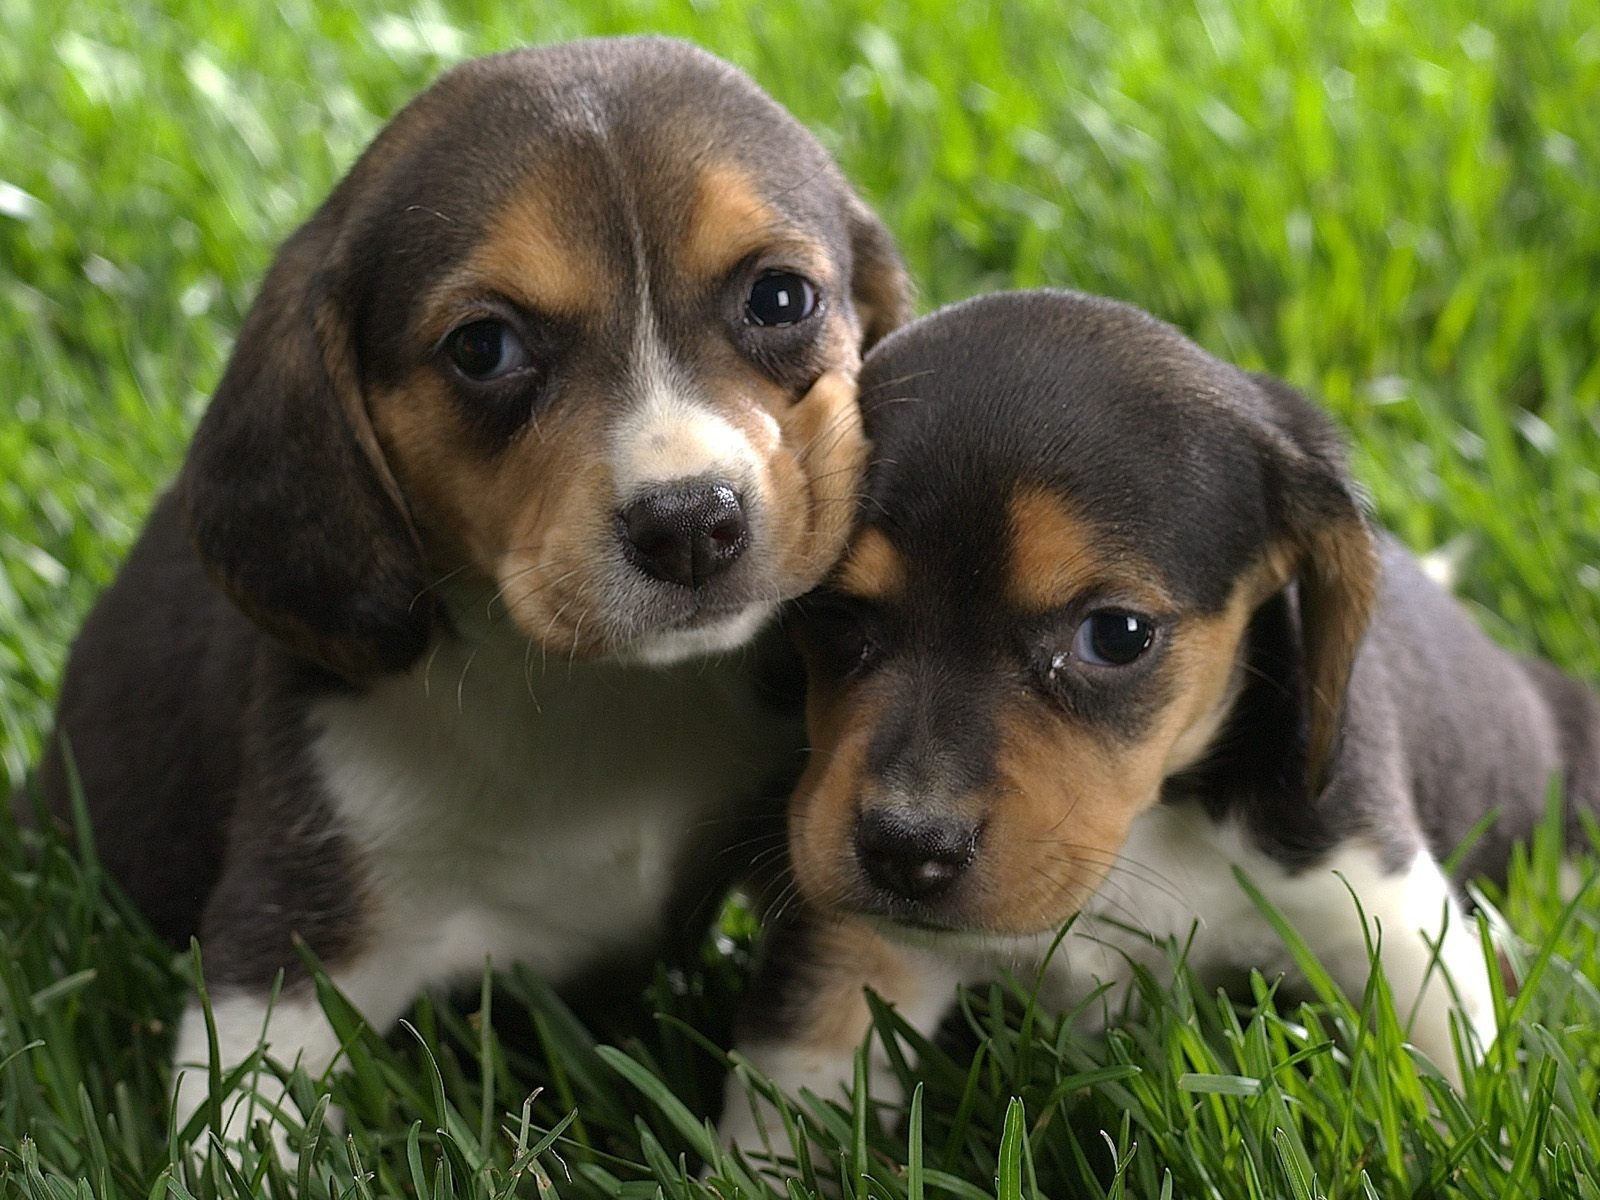 cute puppy pictures and beautiful dogs wallpapres | Nice ...